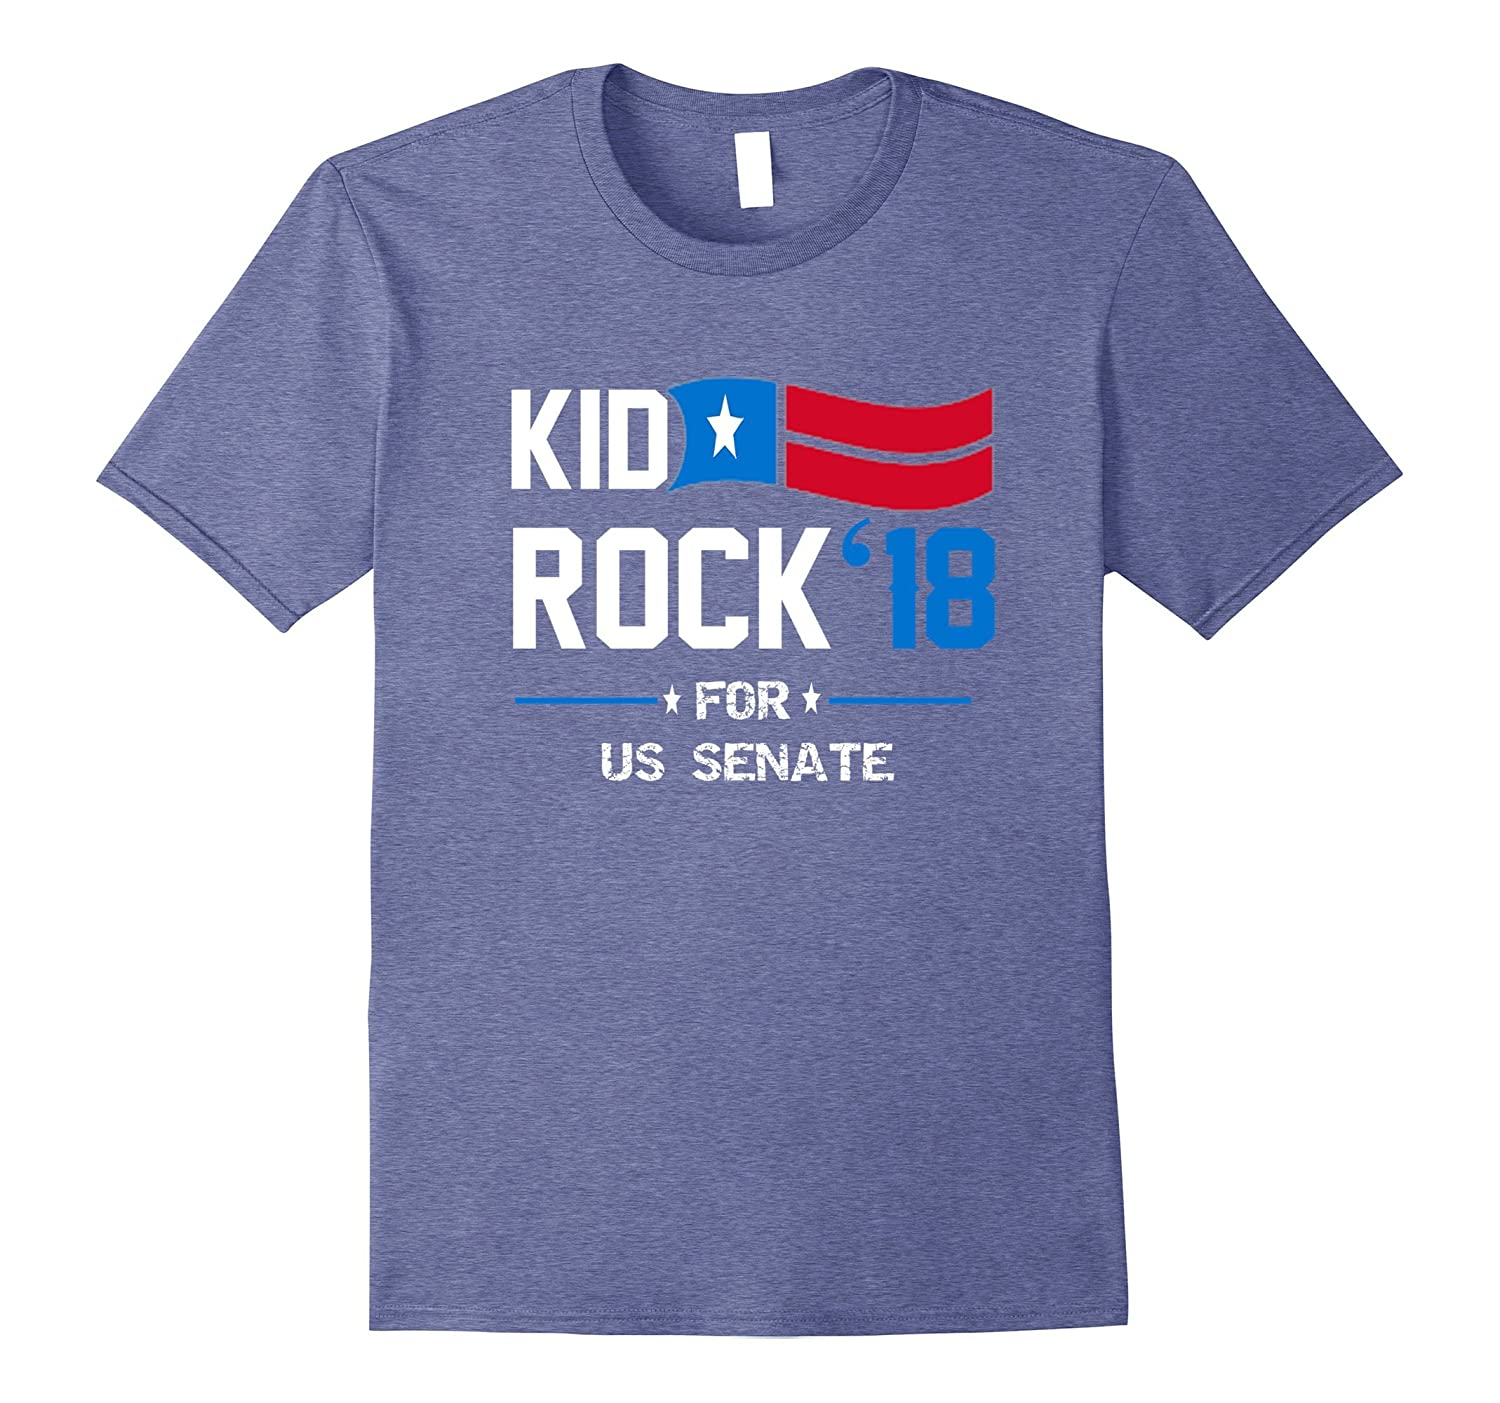 7e1fec9cb Kid For US Senate Election Shirt In rock We Trust 2018-ANZ ⋆ Anztshirt